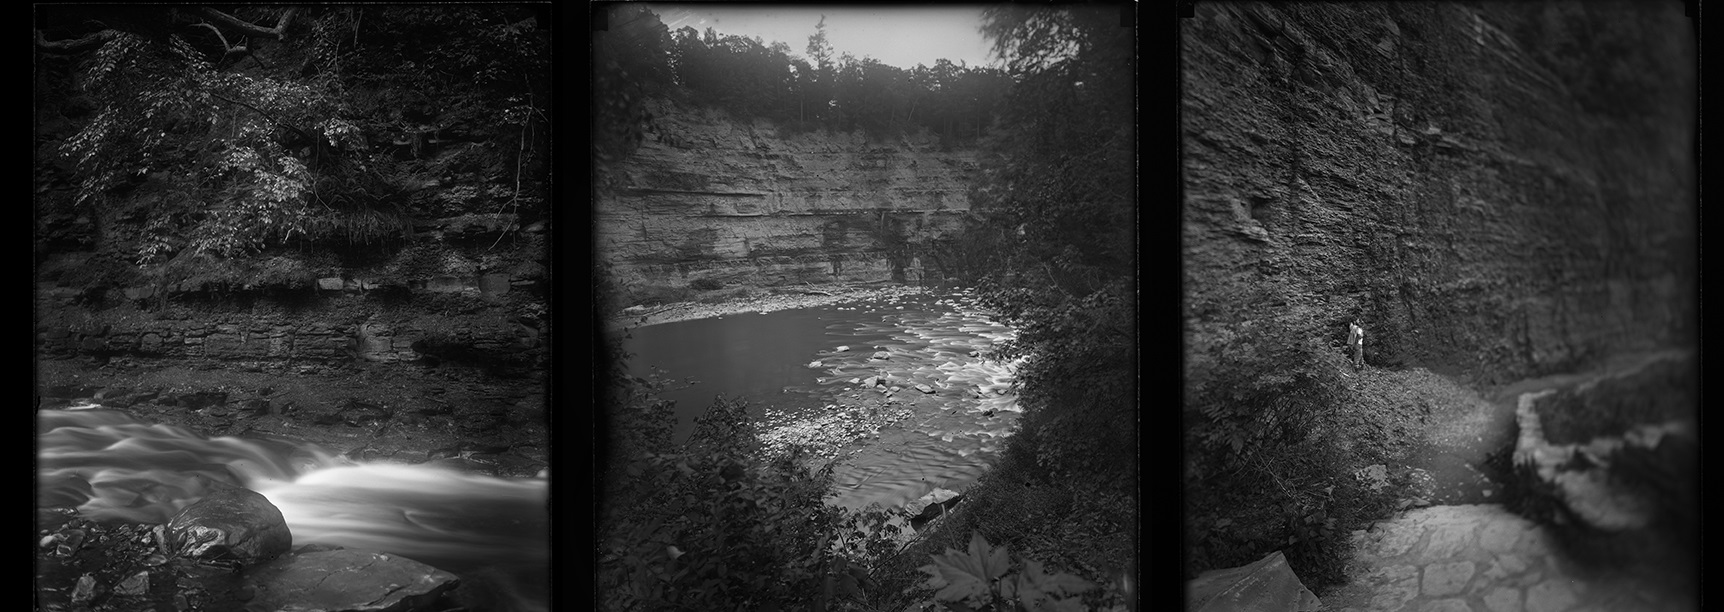 Dry plate photography at Letchworth State Park